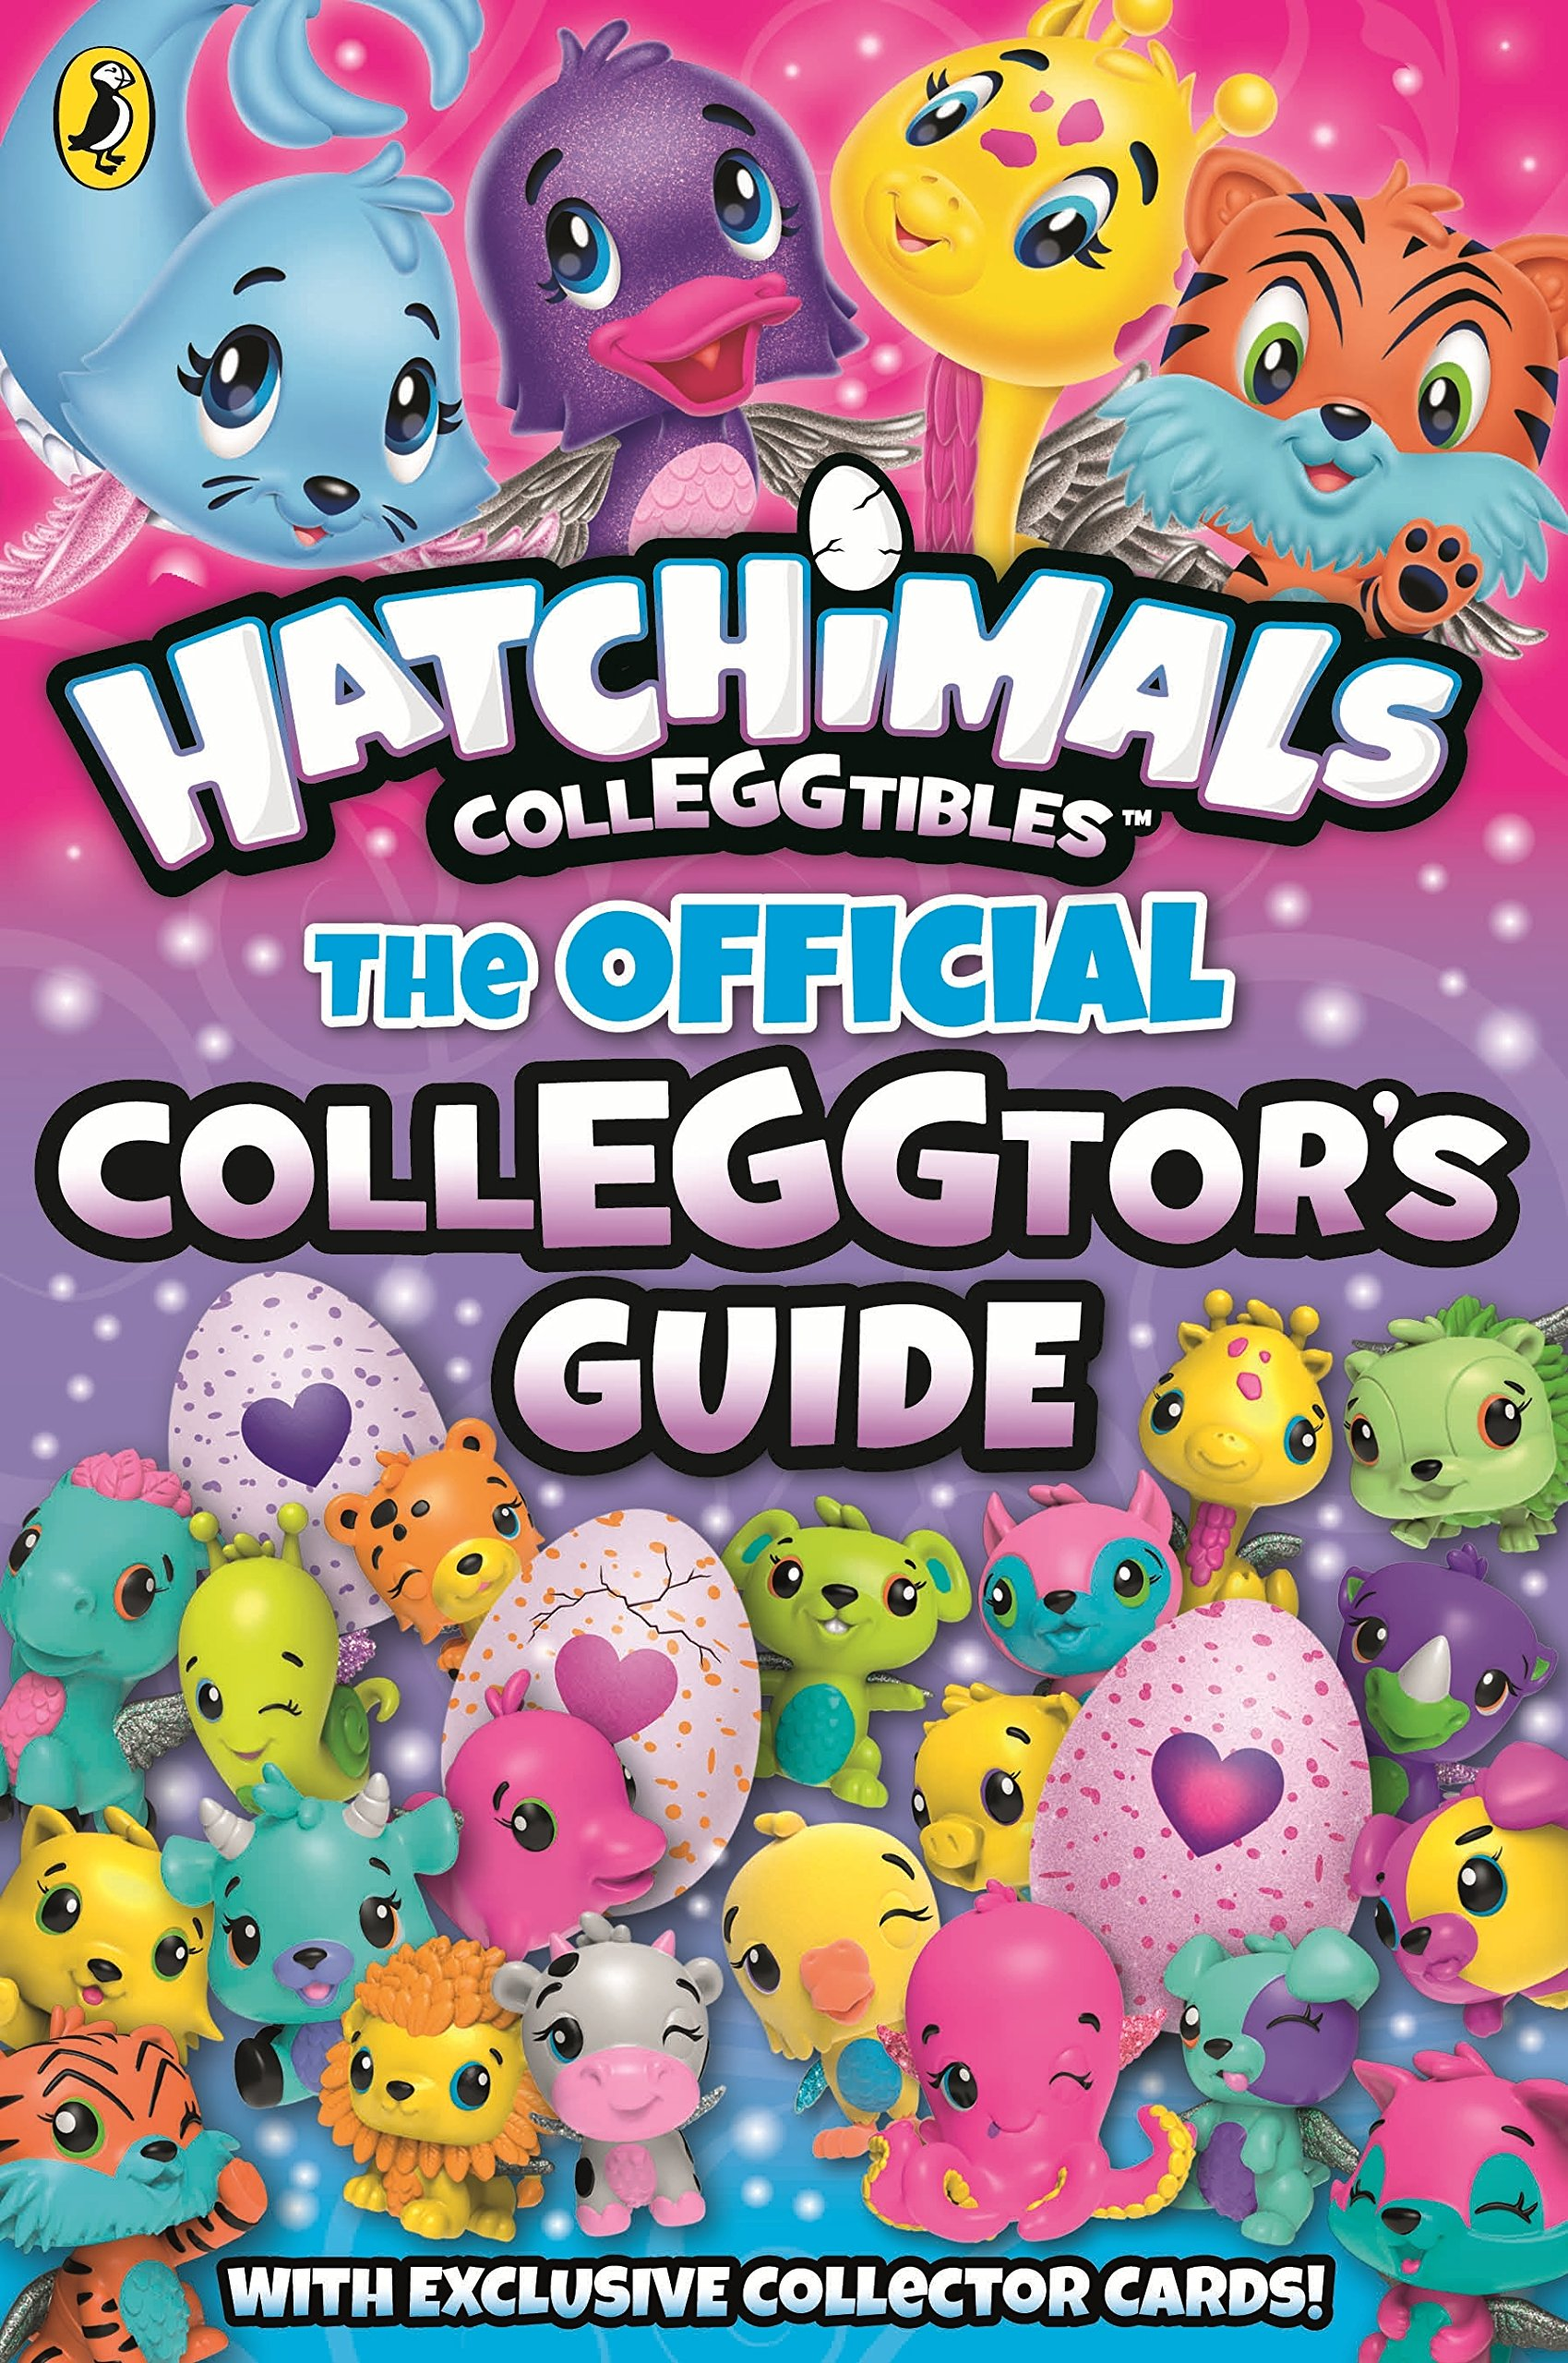 Hatchimals. The Official Colleggtor's Guide